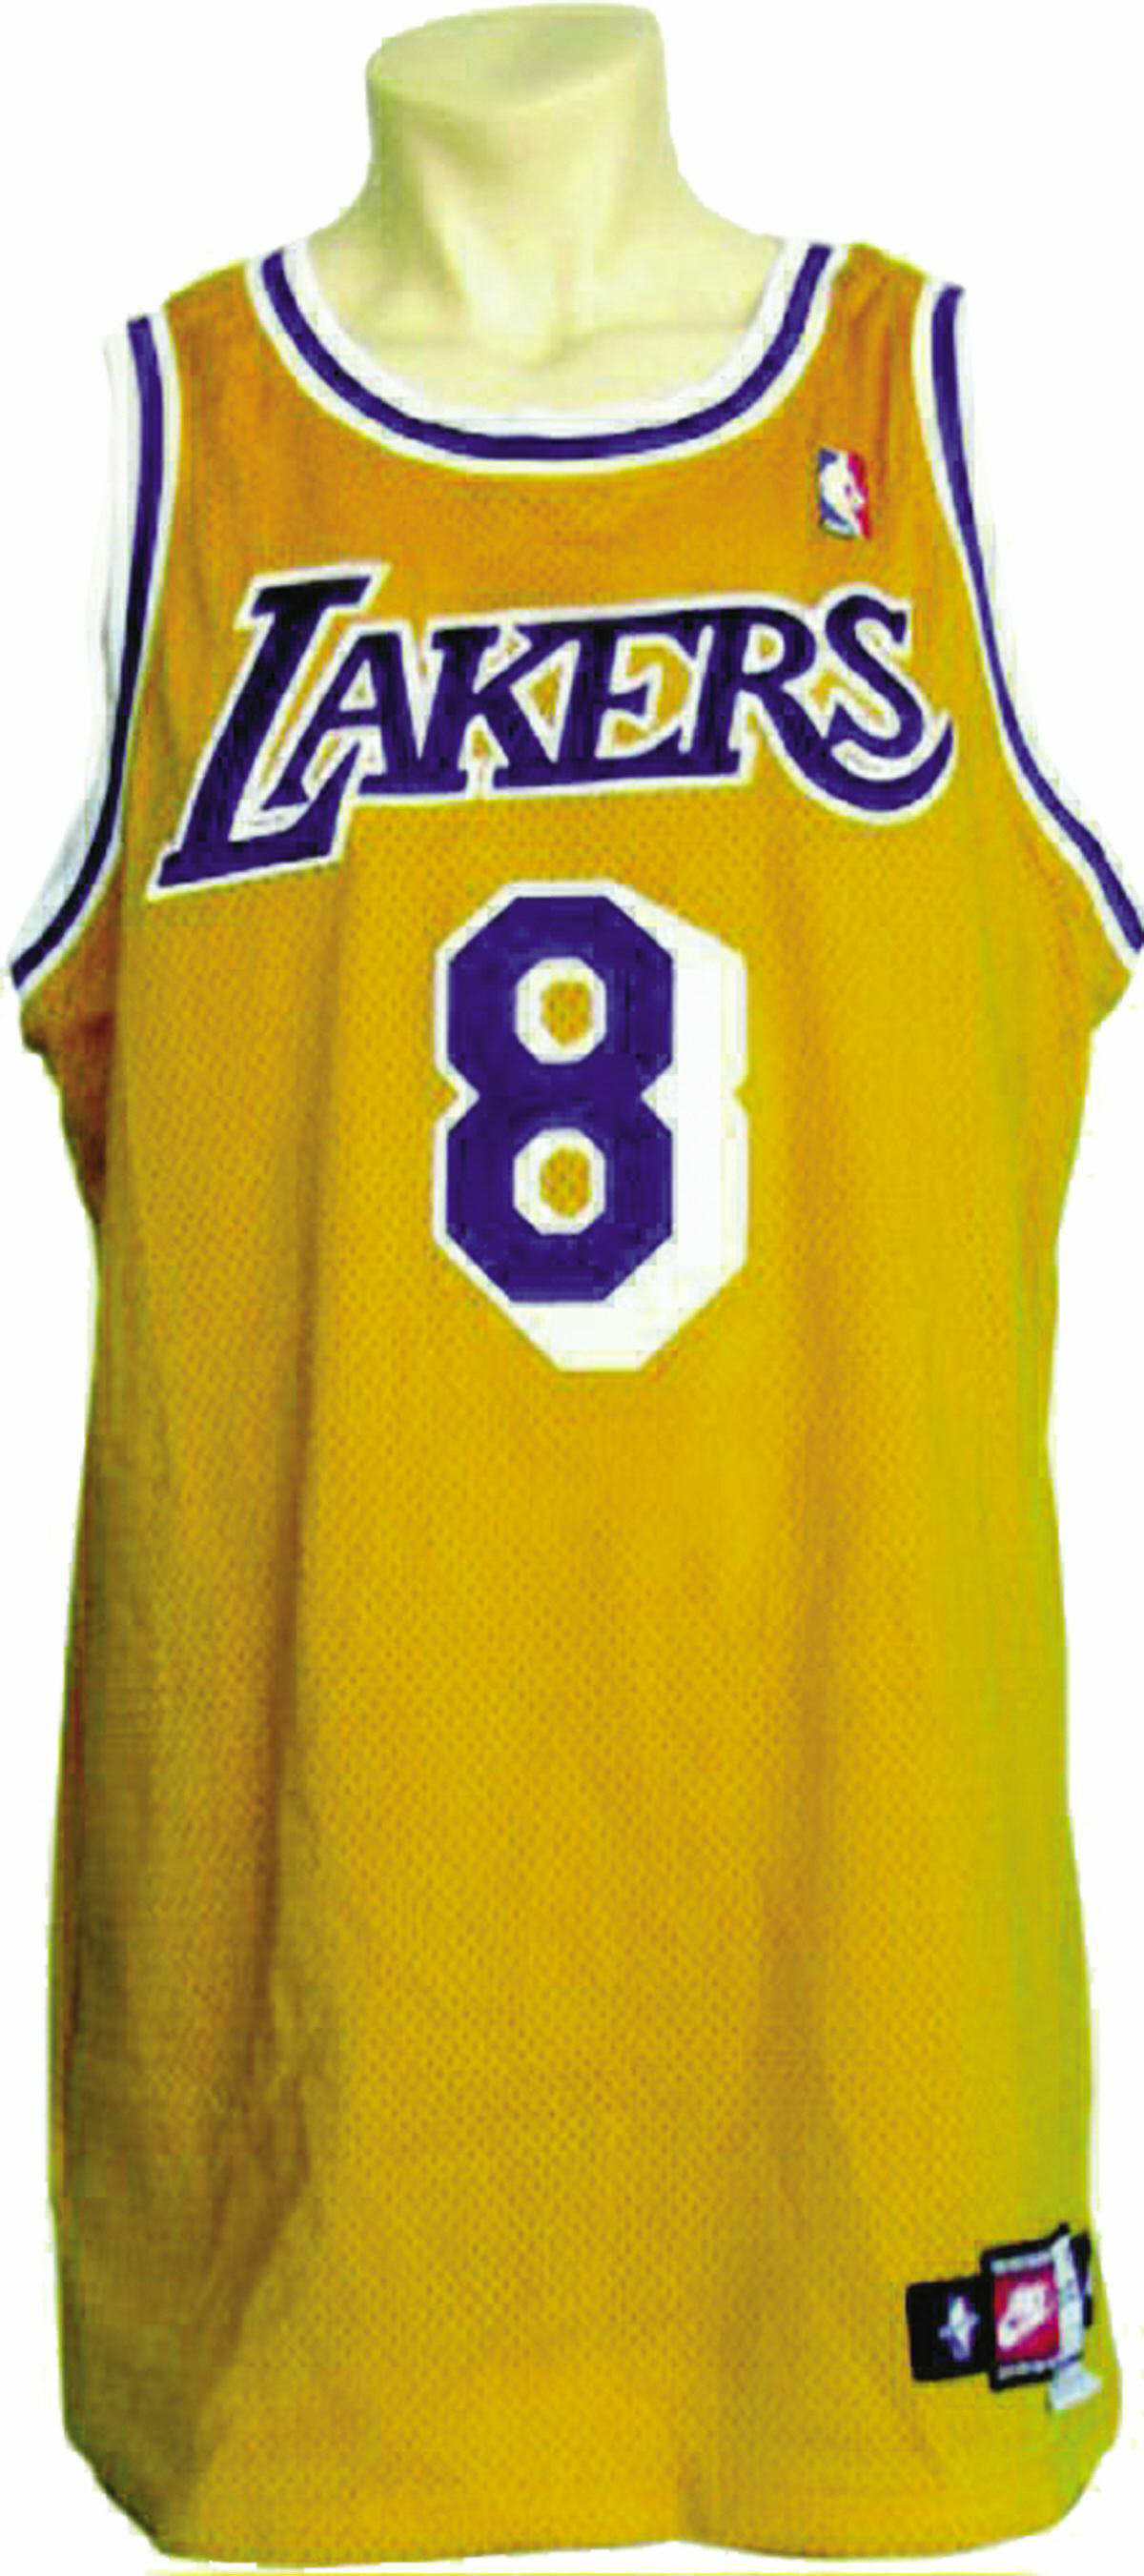 1998-99 Kobe Bryant Game Worn Jersey. He may have lost a few | Lot ...